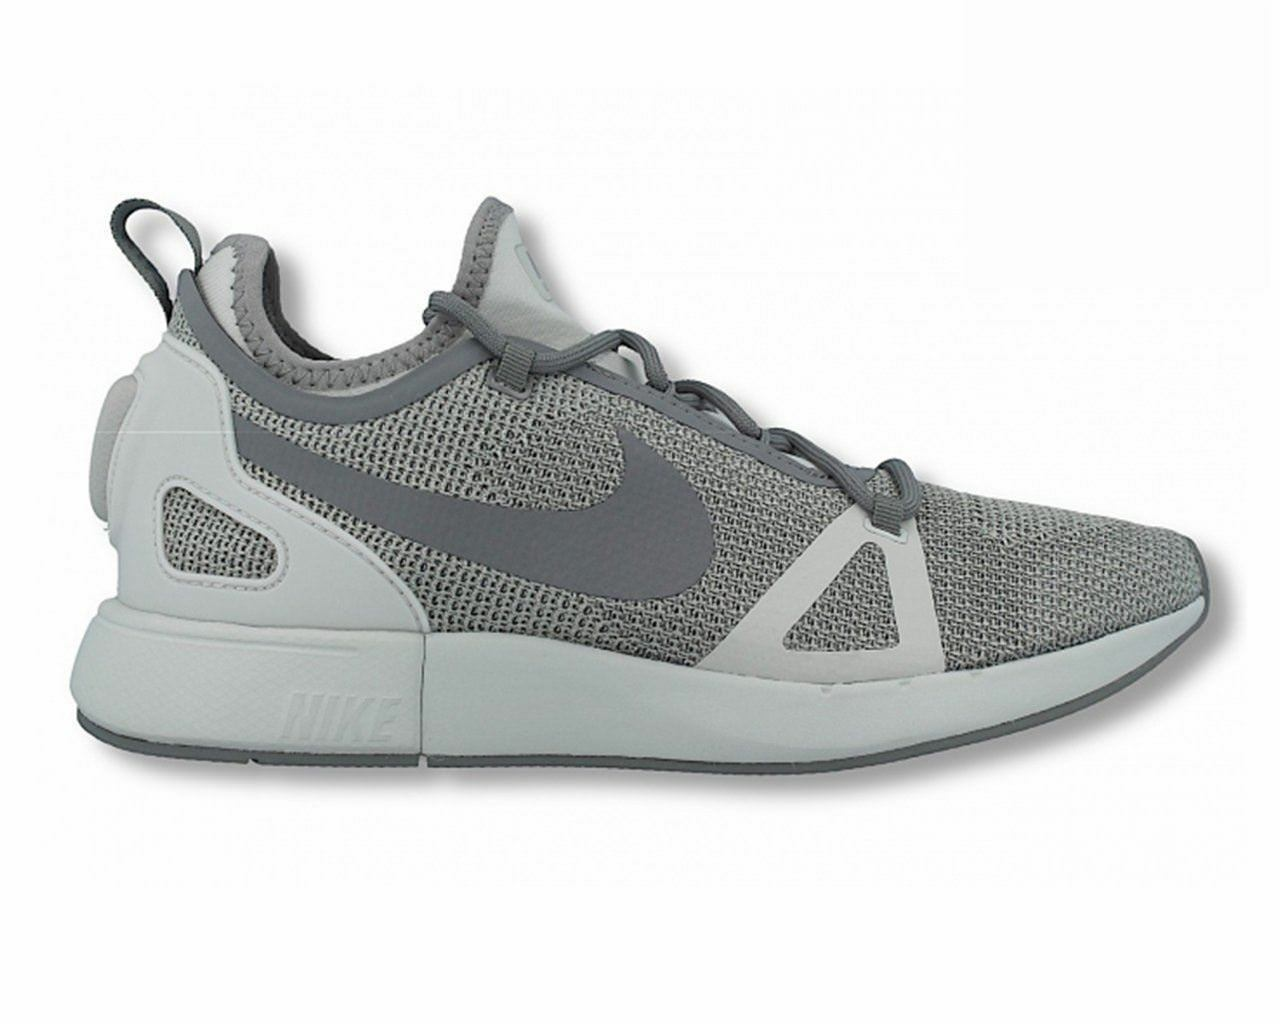 Nike DUEL Grey RACER 918228 004 Pale Grey DUEL Trainers e114ae